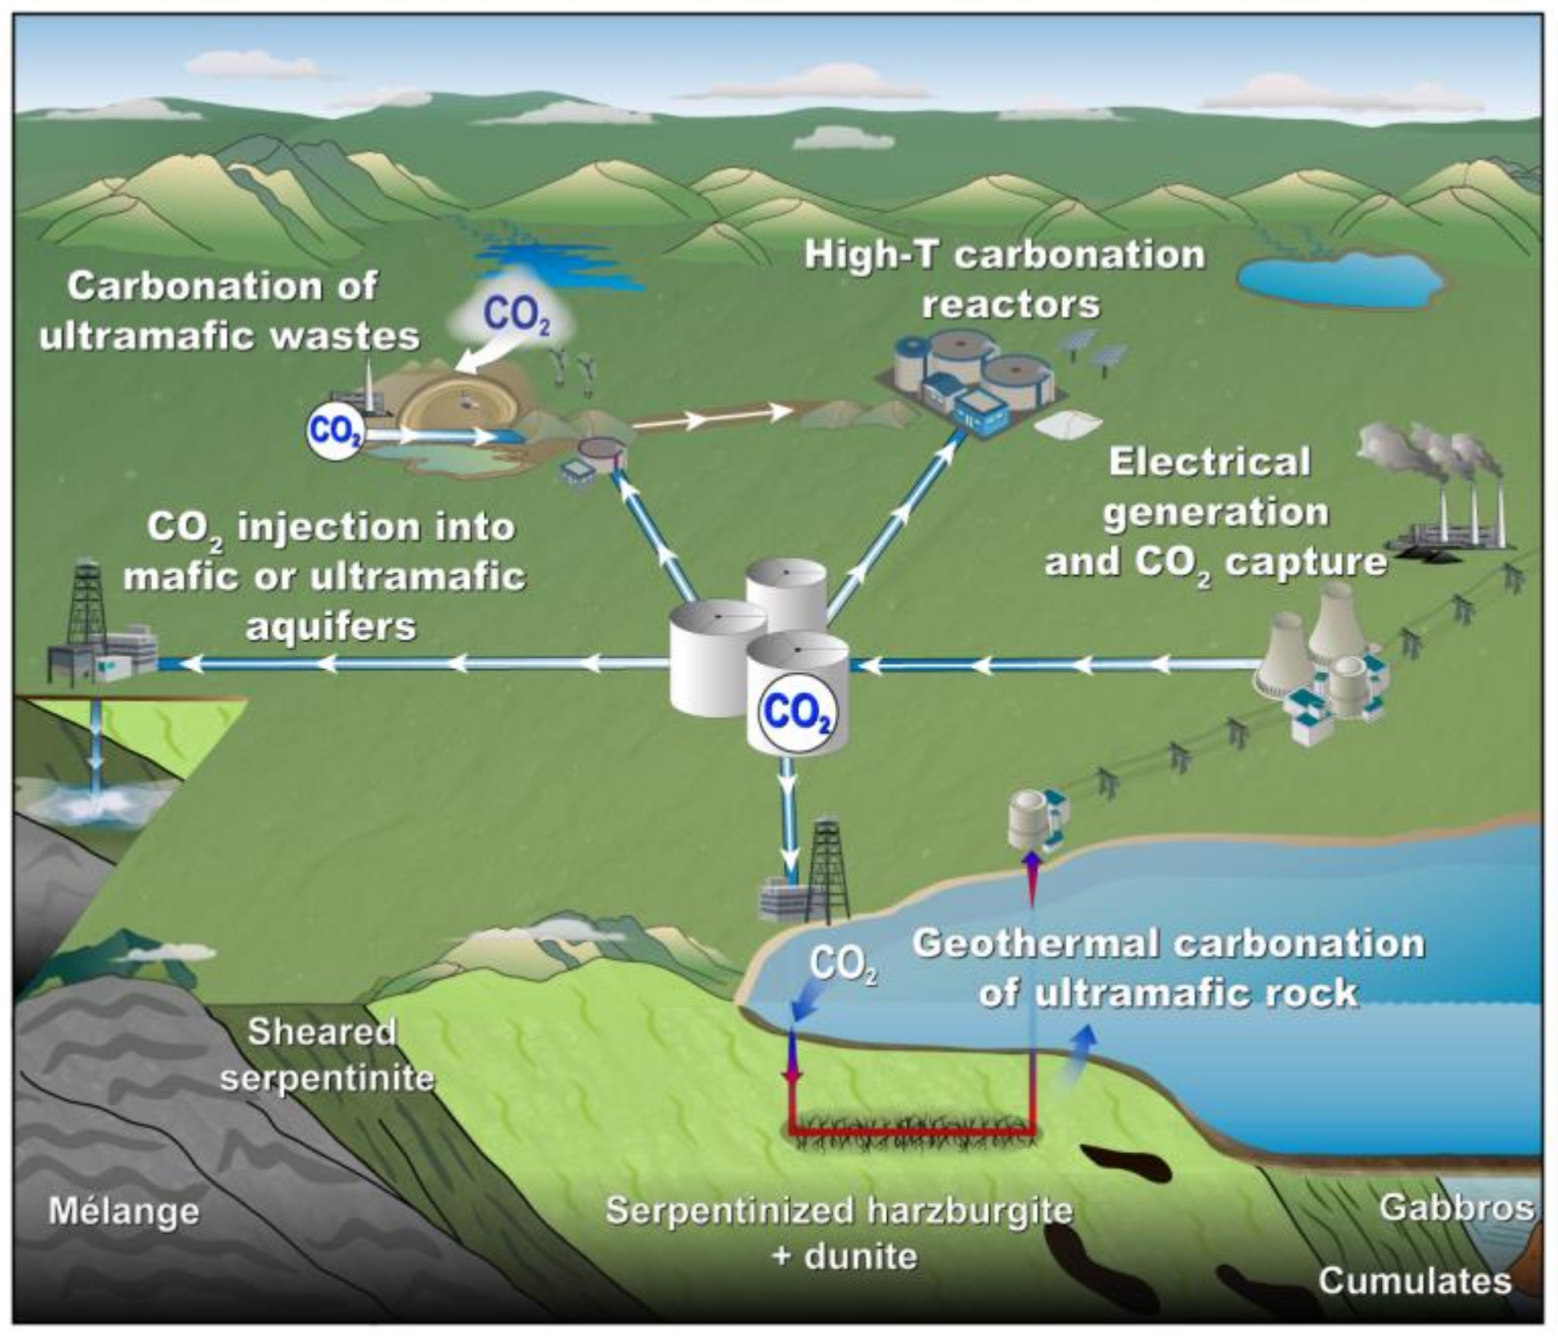 - Mineral carbonation technologies (modified from Power et al., 2013)